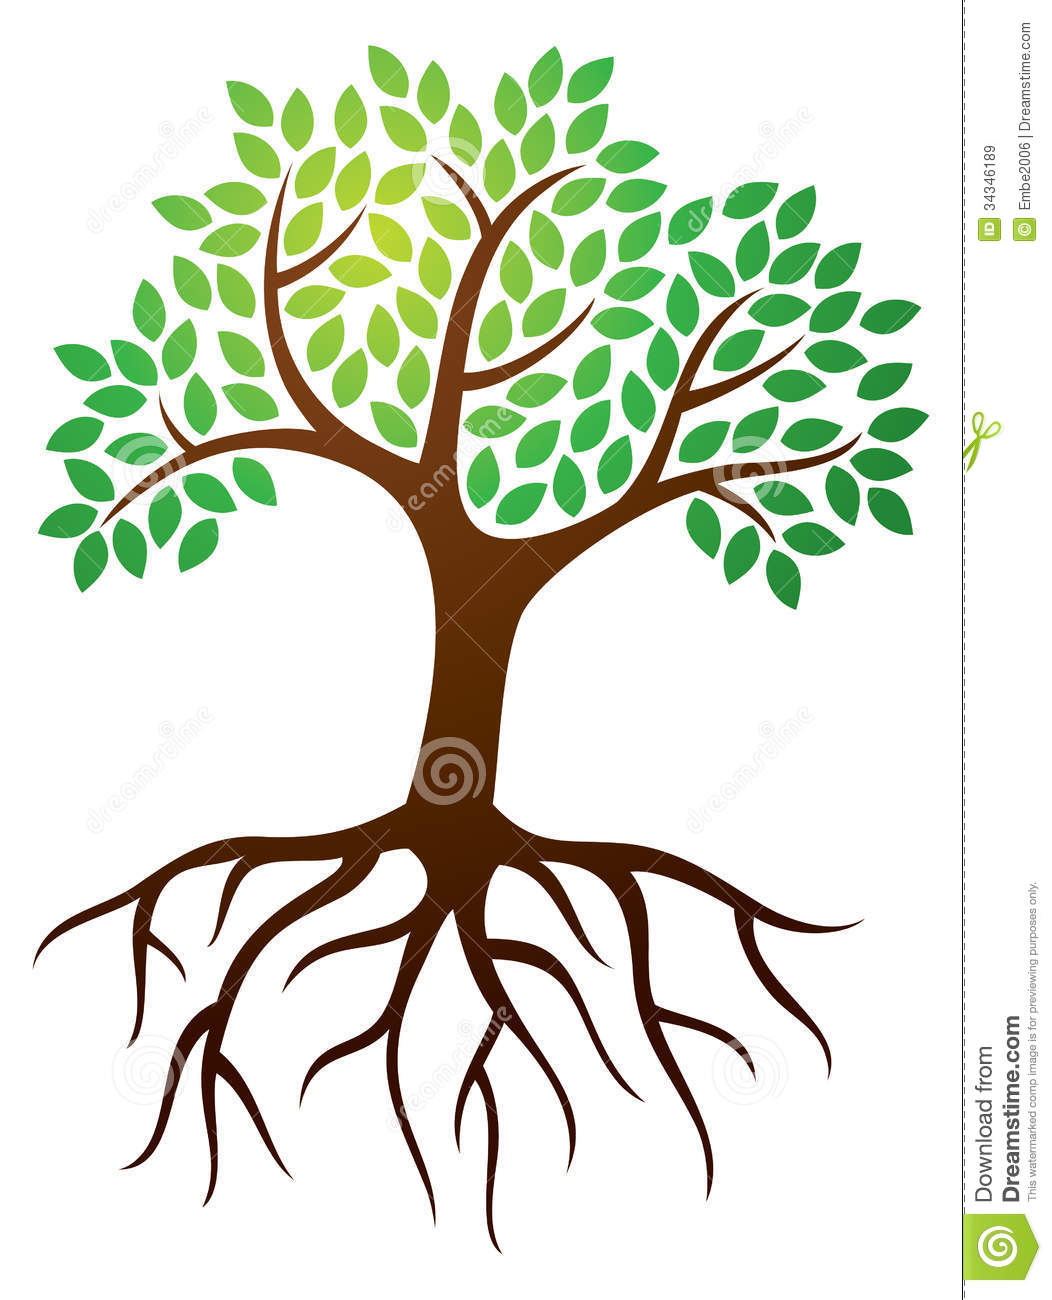 Trees With Roots Clipart - Tree Roots Clipart